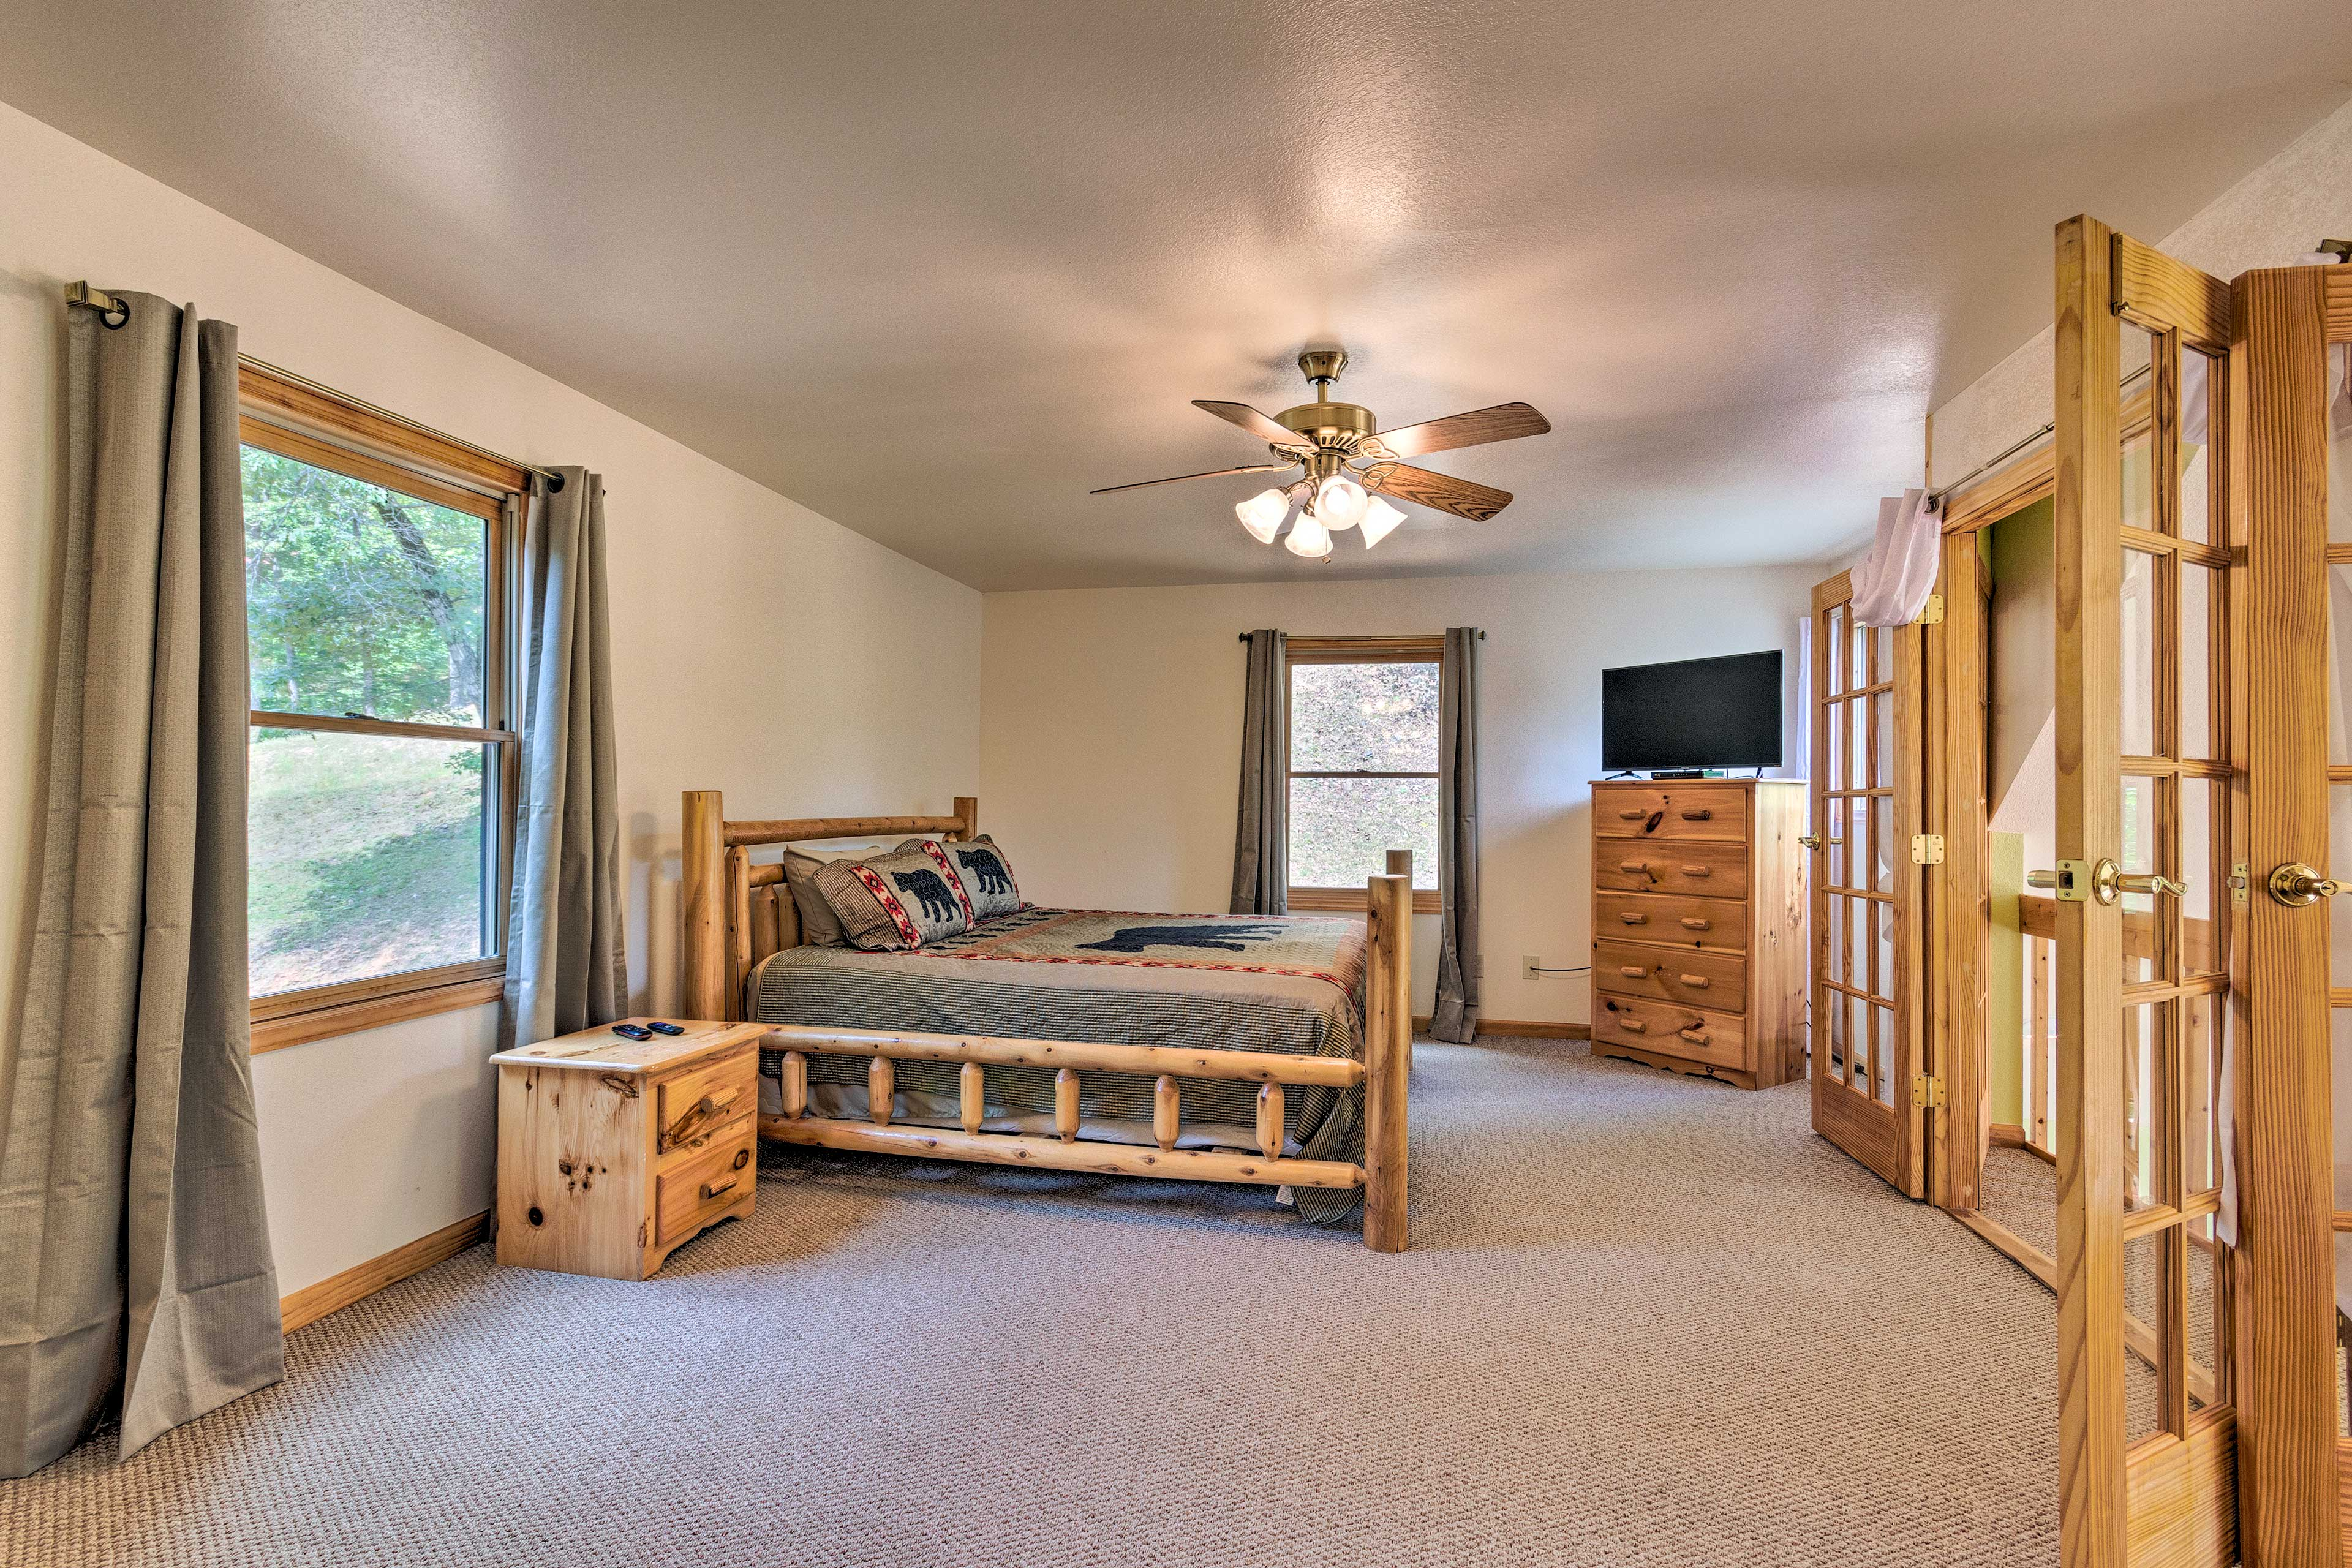 Retreat to the master bedroom for the night in the log-framed king-sized bed.